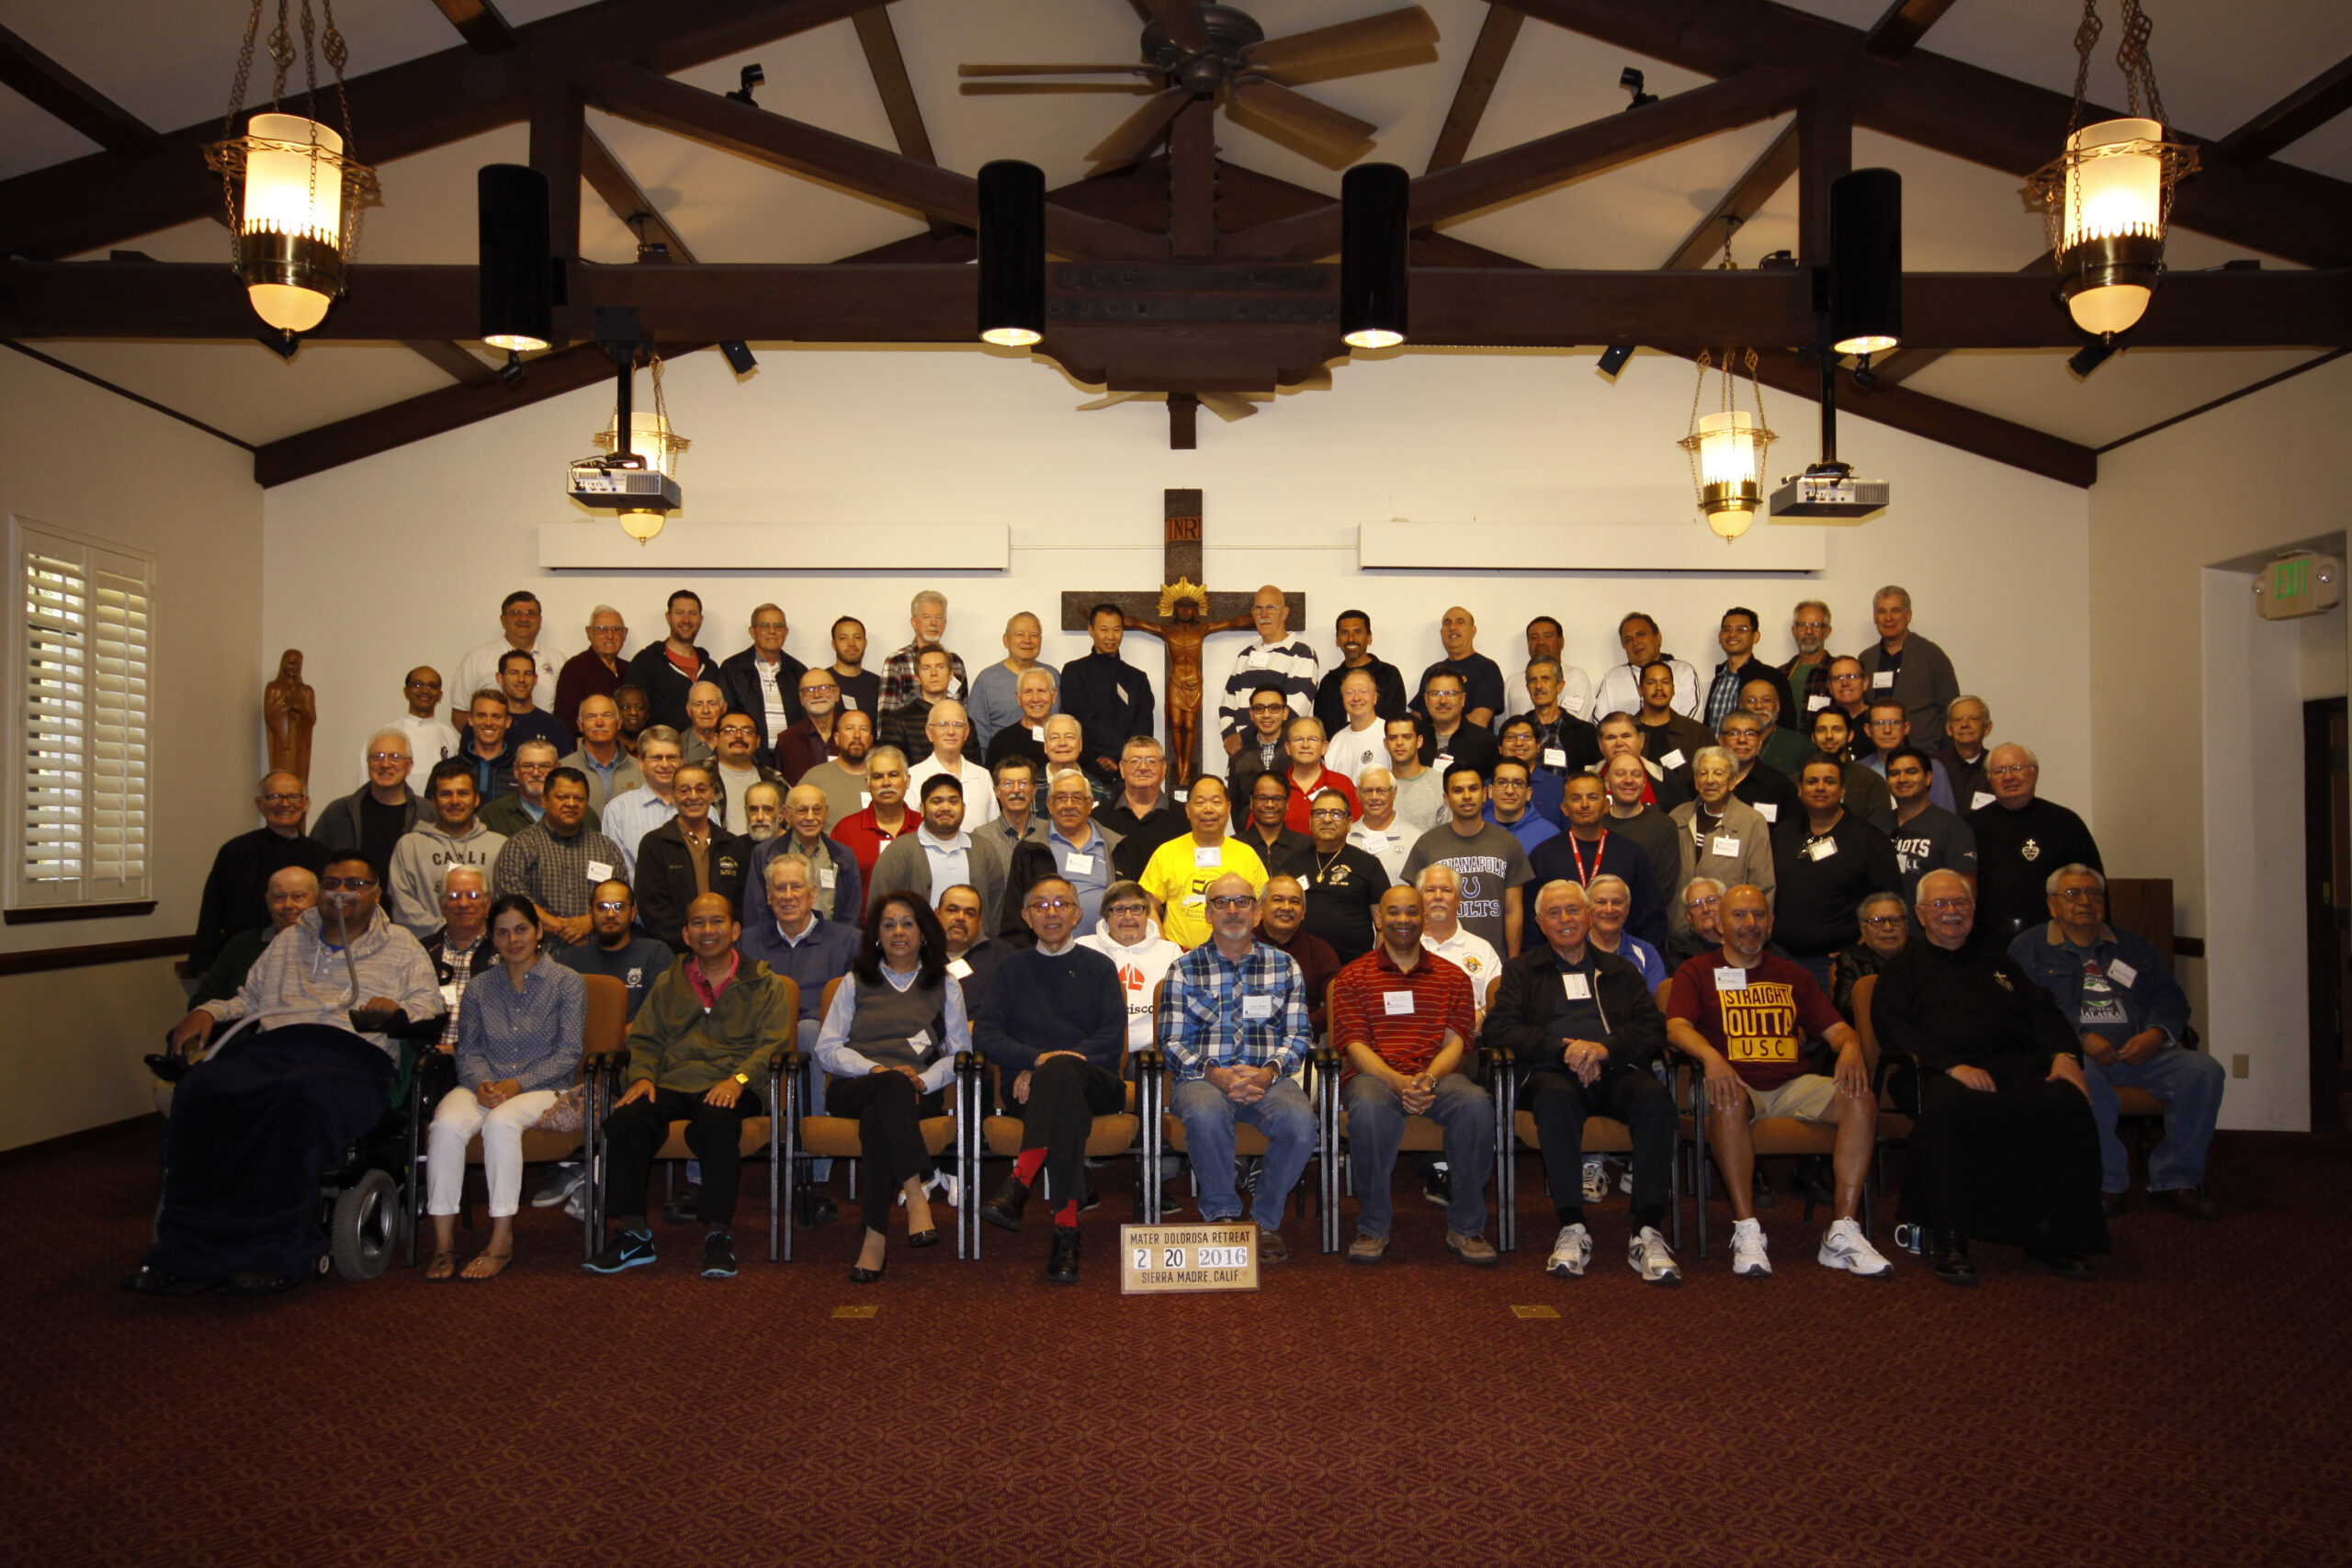 Men's Retreat Weekend, February 19-21, 2016